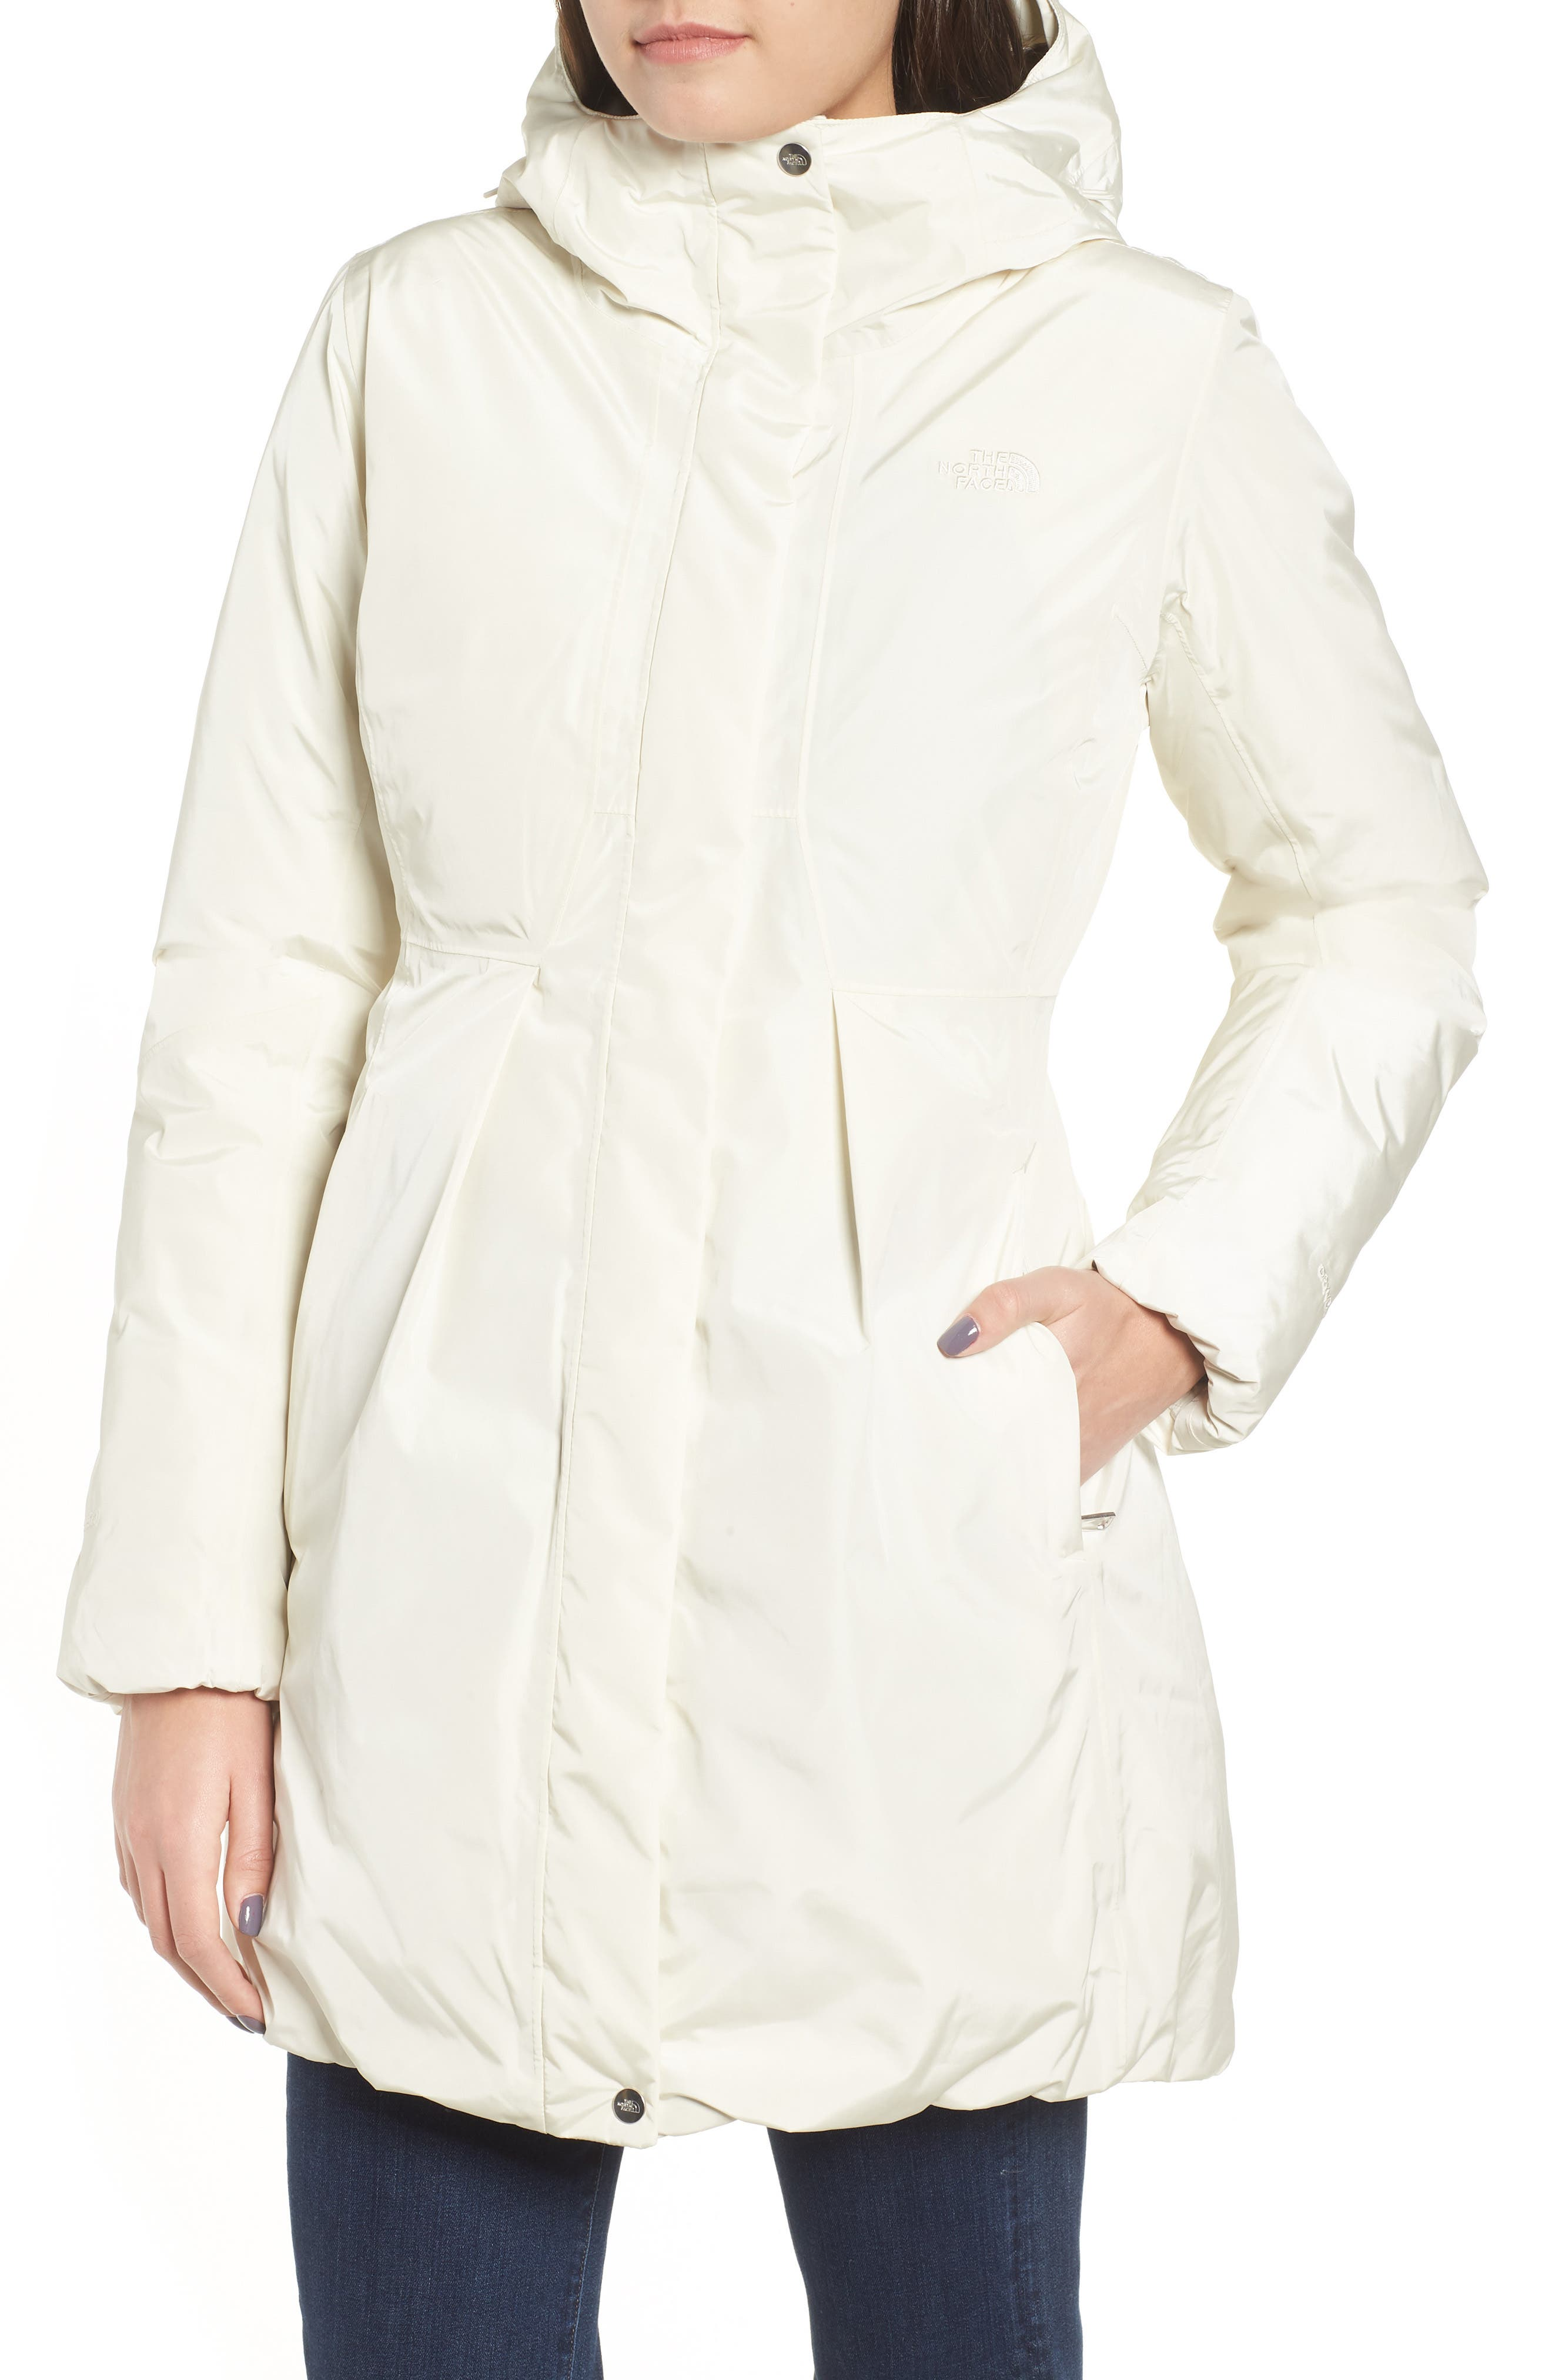 THE NORTH FACE,                             Transarctic Mama Down Parka,                             Alternate thumbnail 4, color,                             VINTAGE WHITE